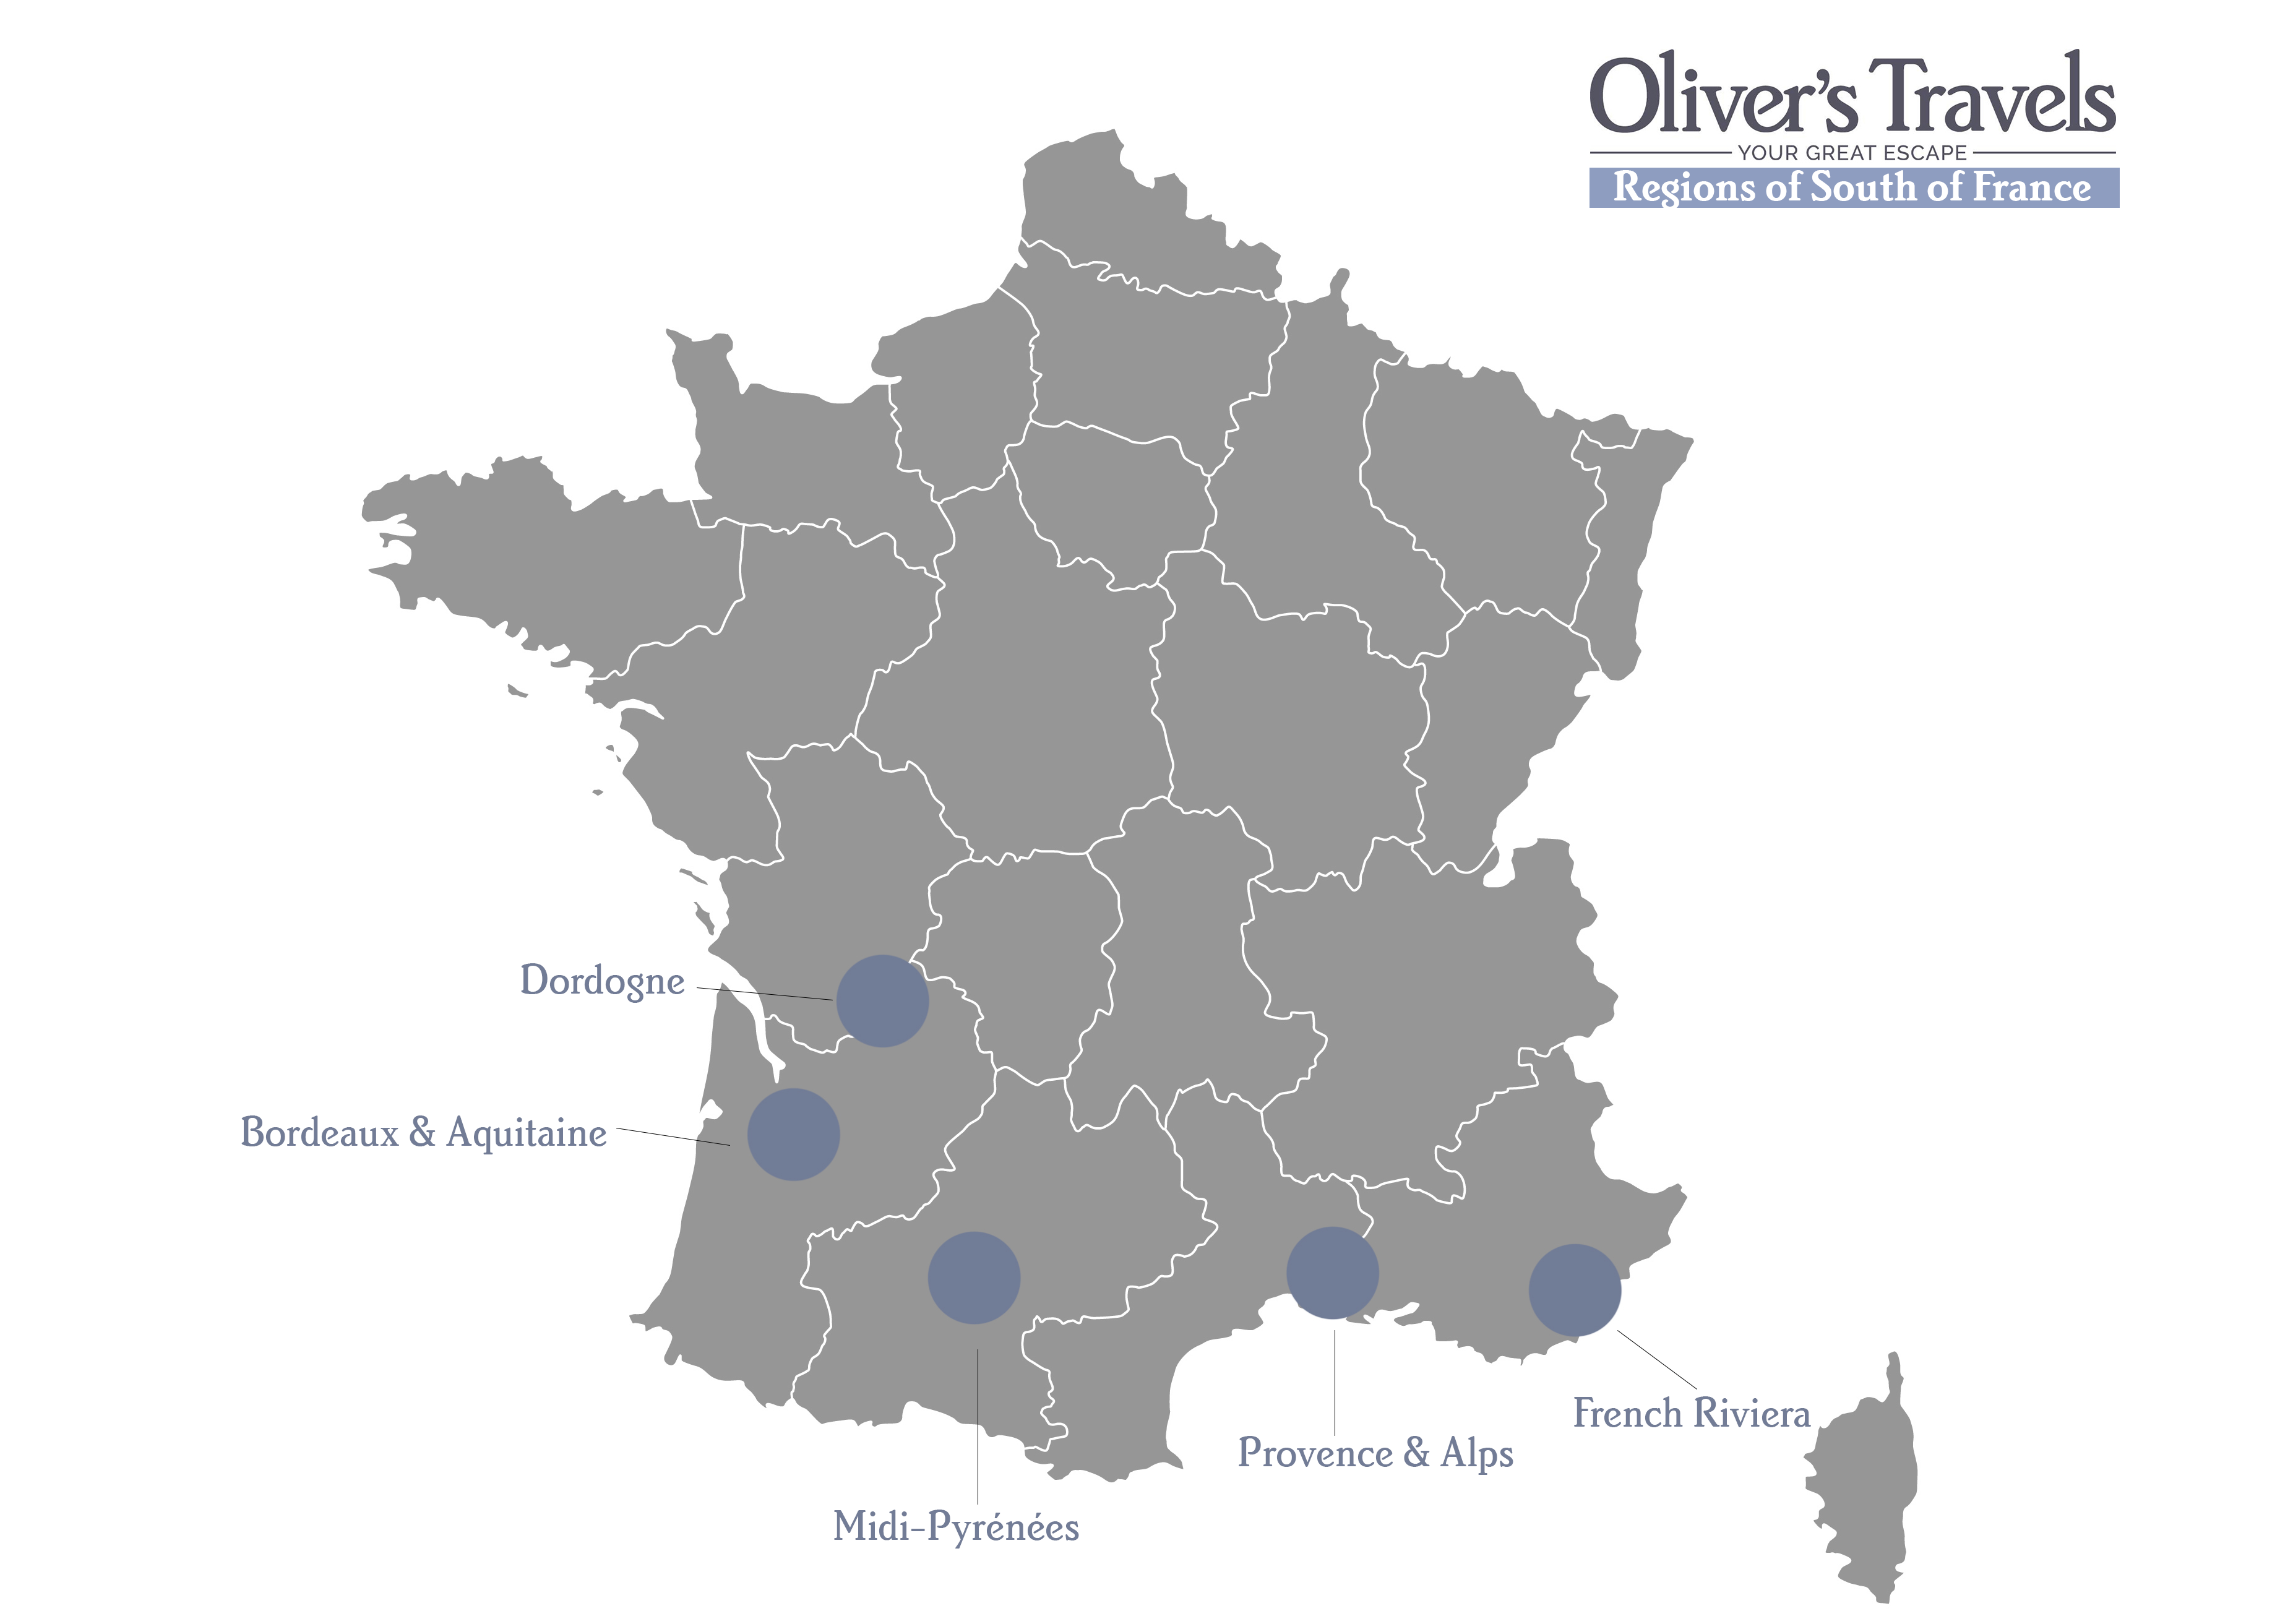 Map South Of France.Travel Guide To The South Of France Oliver S Travels